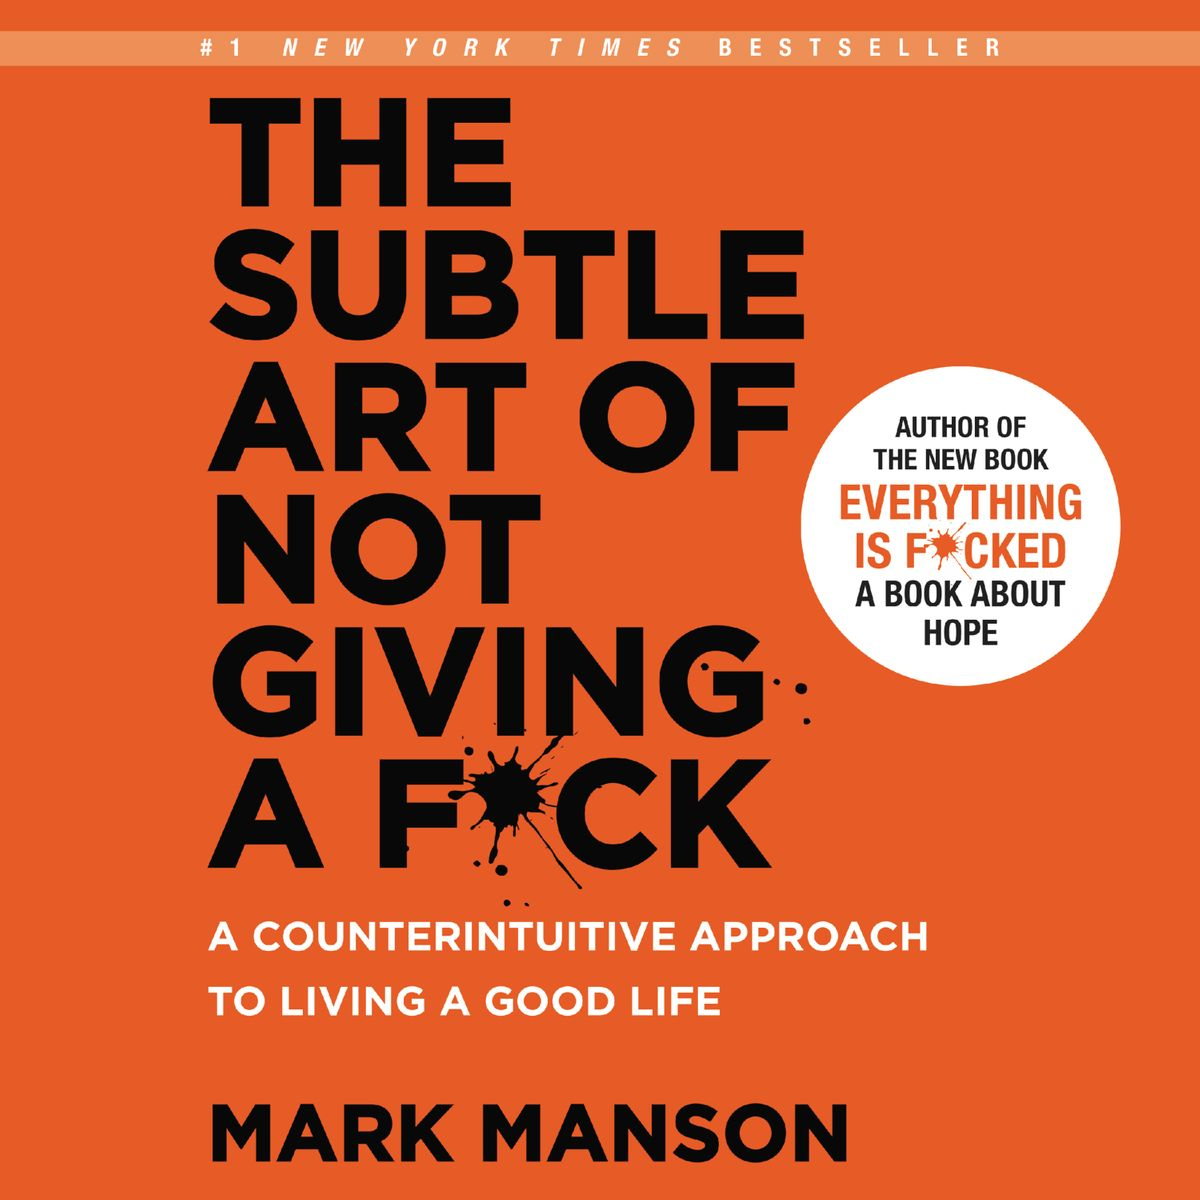 The Subtle Art of Not Giving a F*ck: A Counterintuitive Approach to Living a Good Life - Mark Manson - Drive: The Surprising Truth About What Motivates Us - Daniel H. Pink - quotes, rating, reviews, where to buy